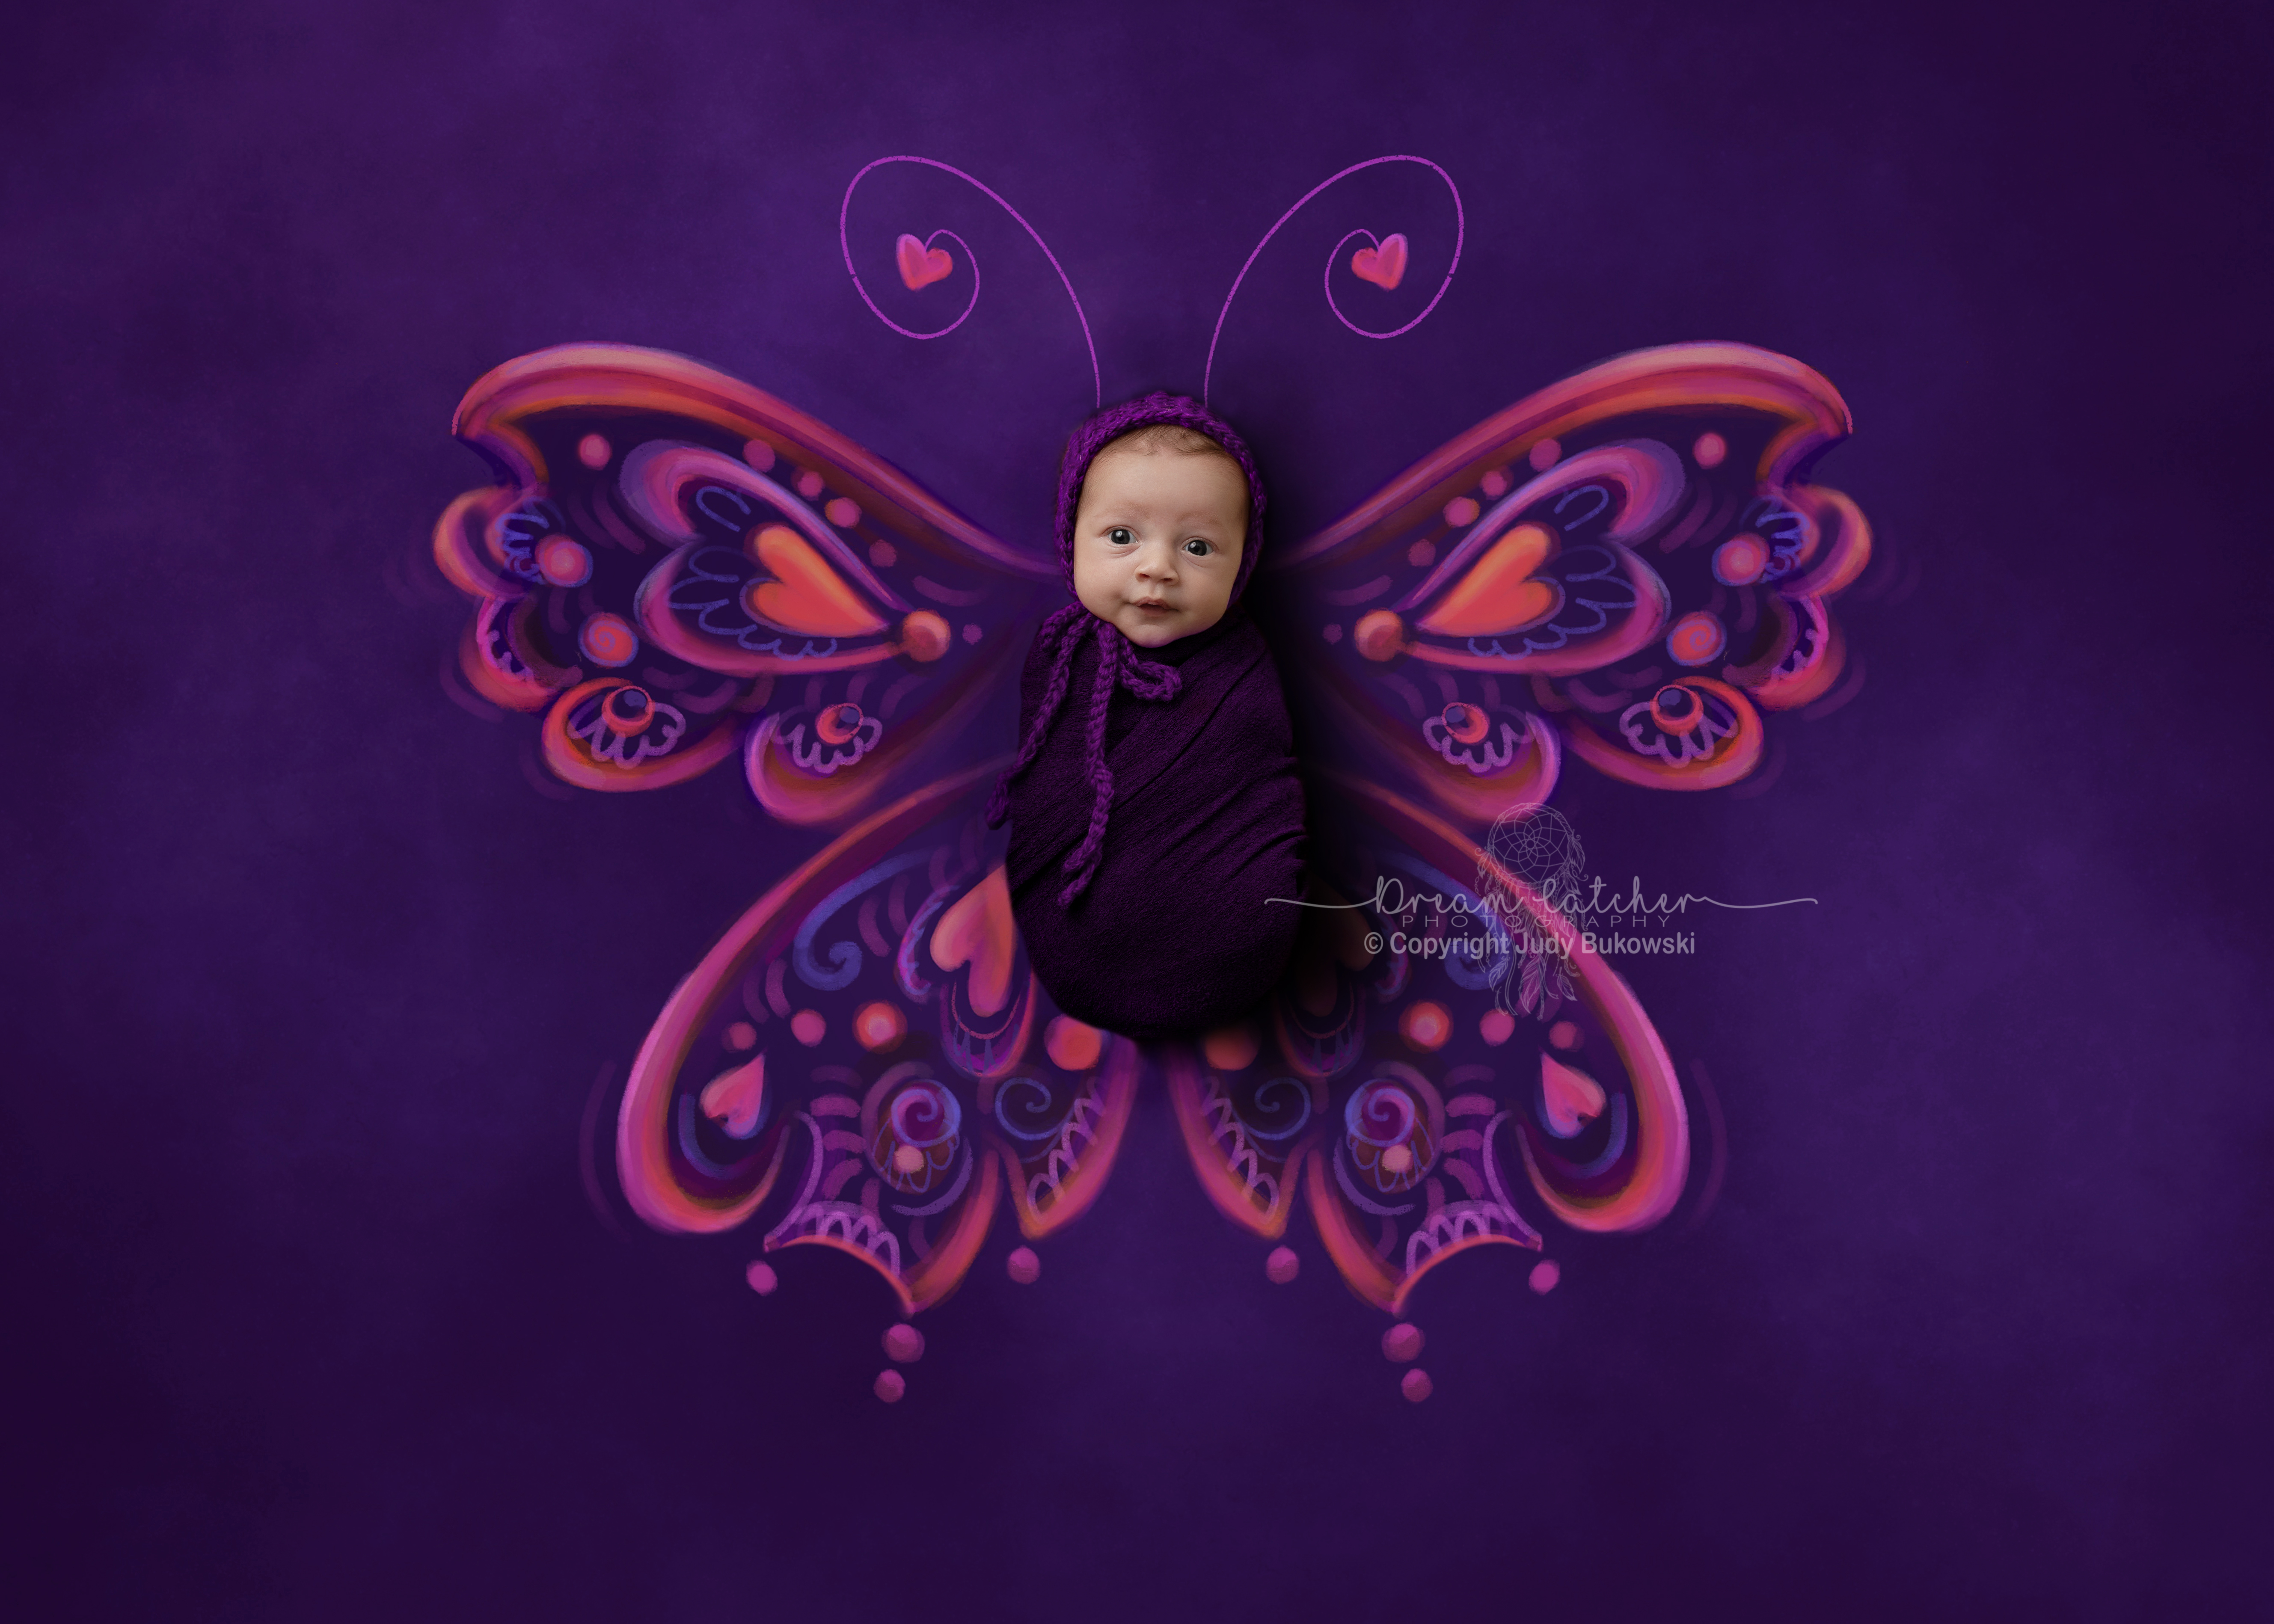 Pinkpurple_Butterfly_-1 fb